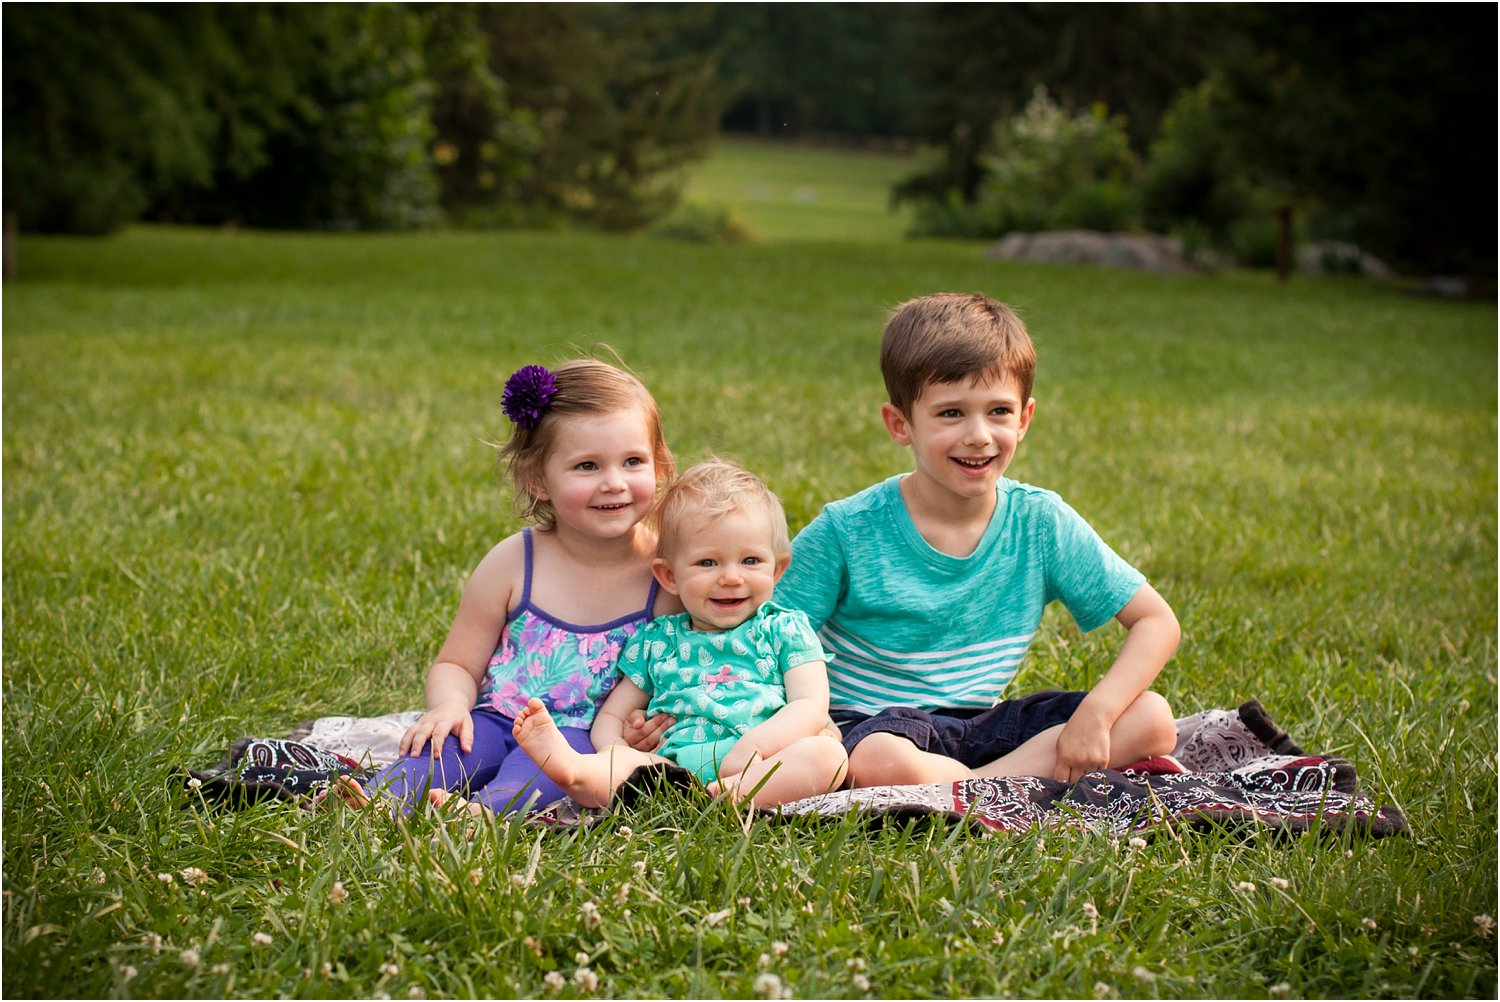 Blandy_Arboretum_Sibling_Mini_Sessions_Ouzts_0008.jpg